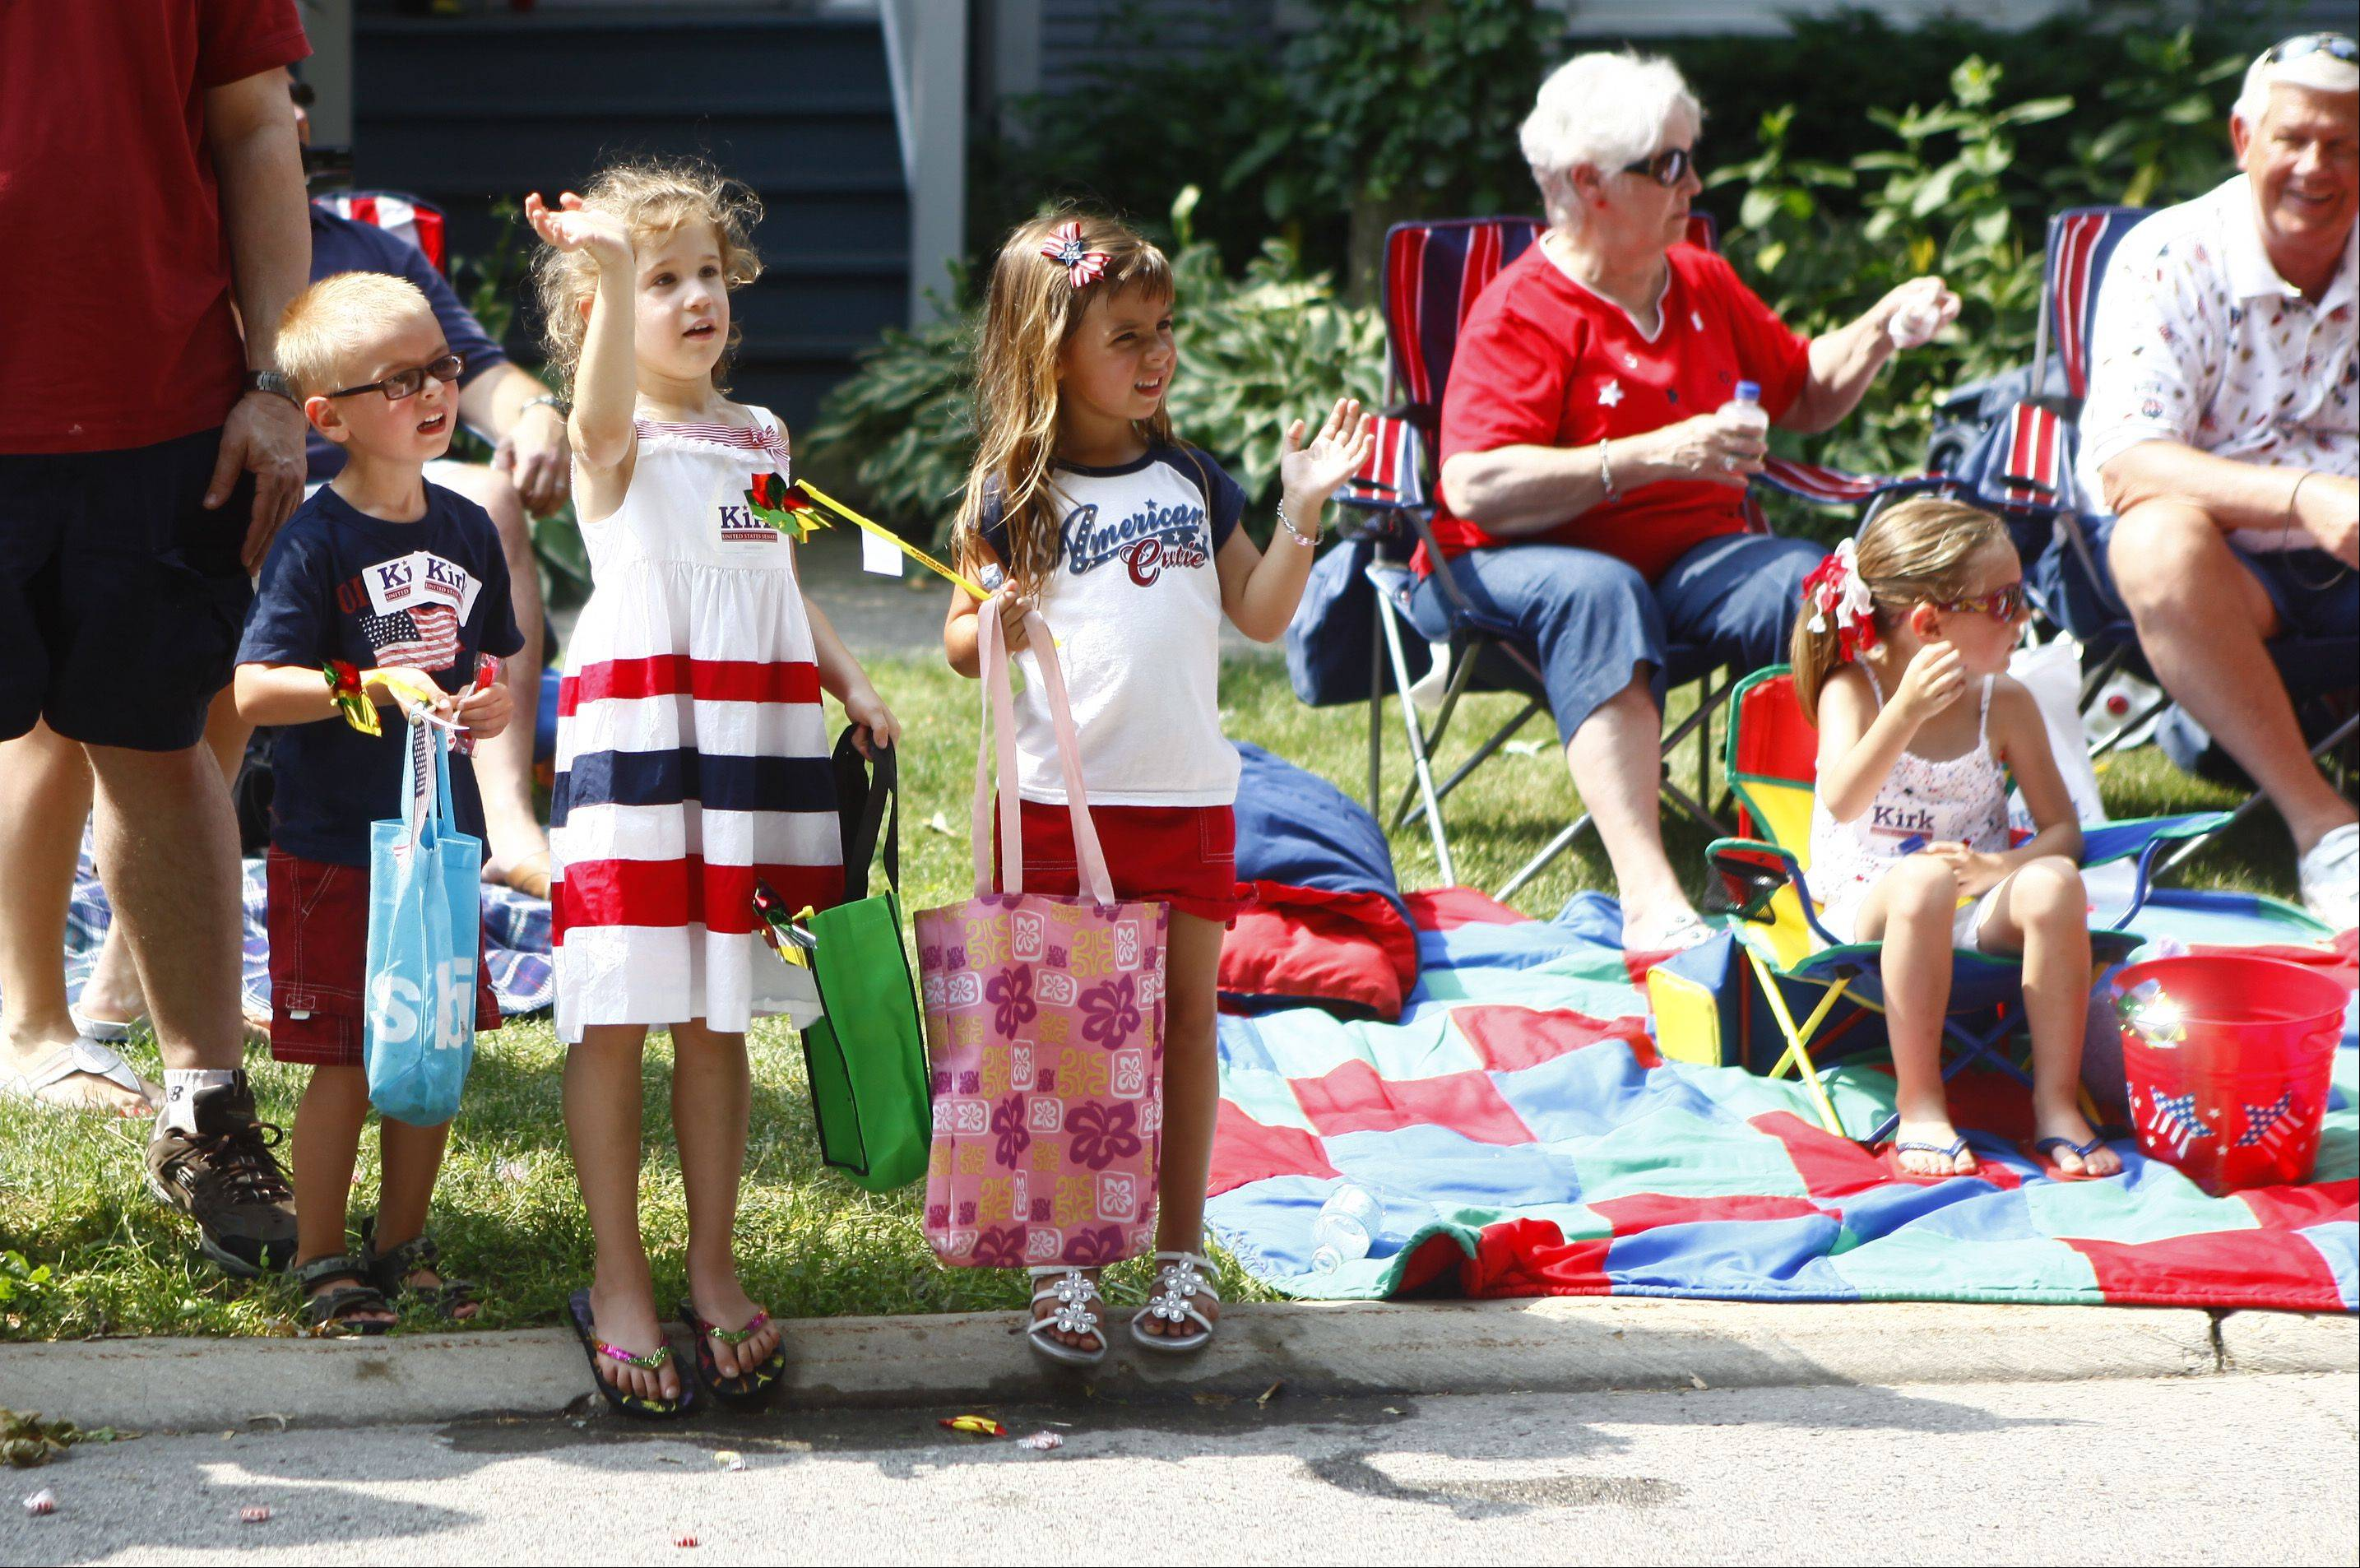 Jonathan Kravchuk, 5, Chloe Gross, 5, and Julia Kravchuk, 5, all from Rolling Meadows, wave to floats passing during the annual Palatine Jaycees Independence Day Parade Saturday morning. For more on the festivities across the area, see Page X.